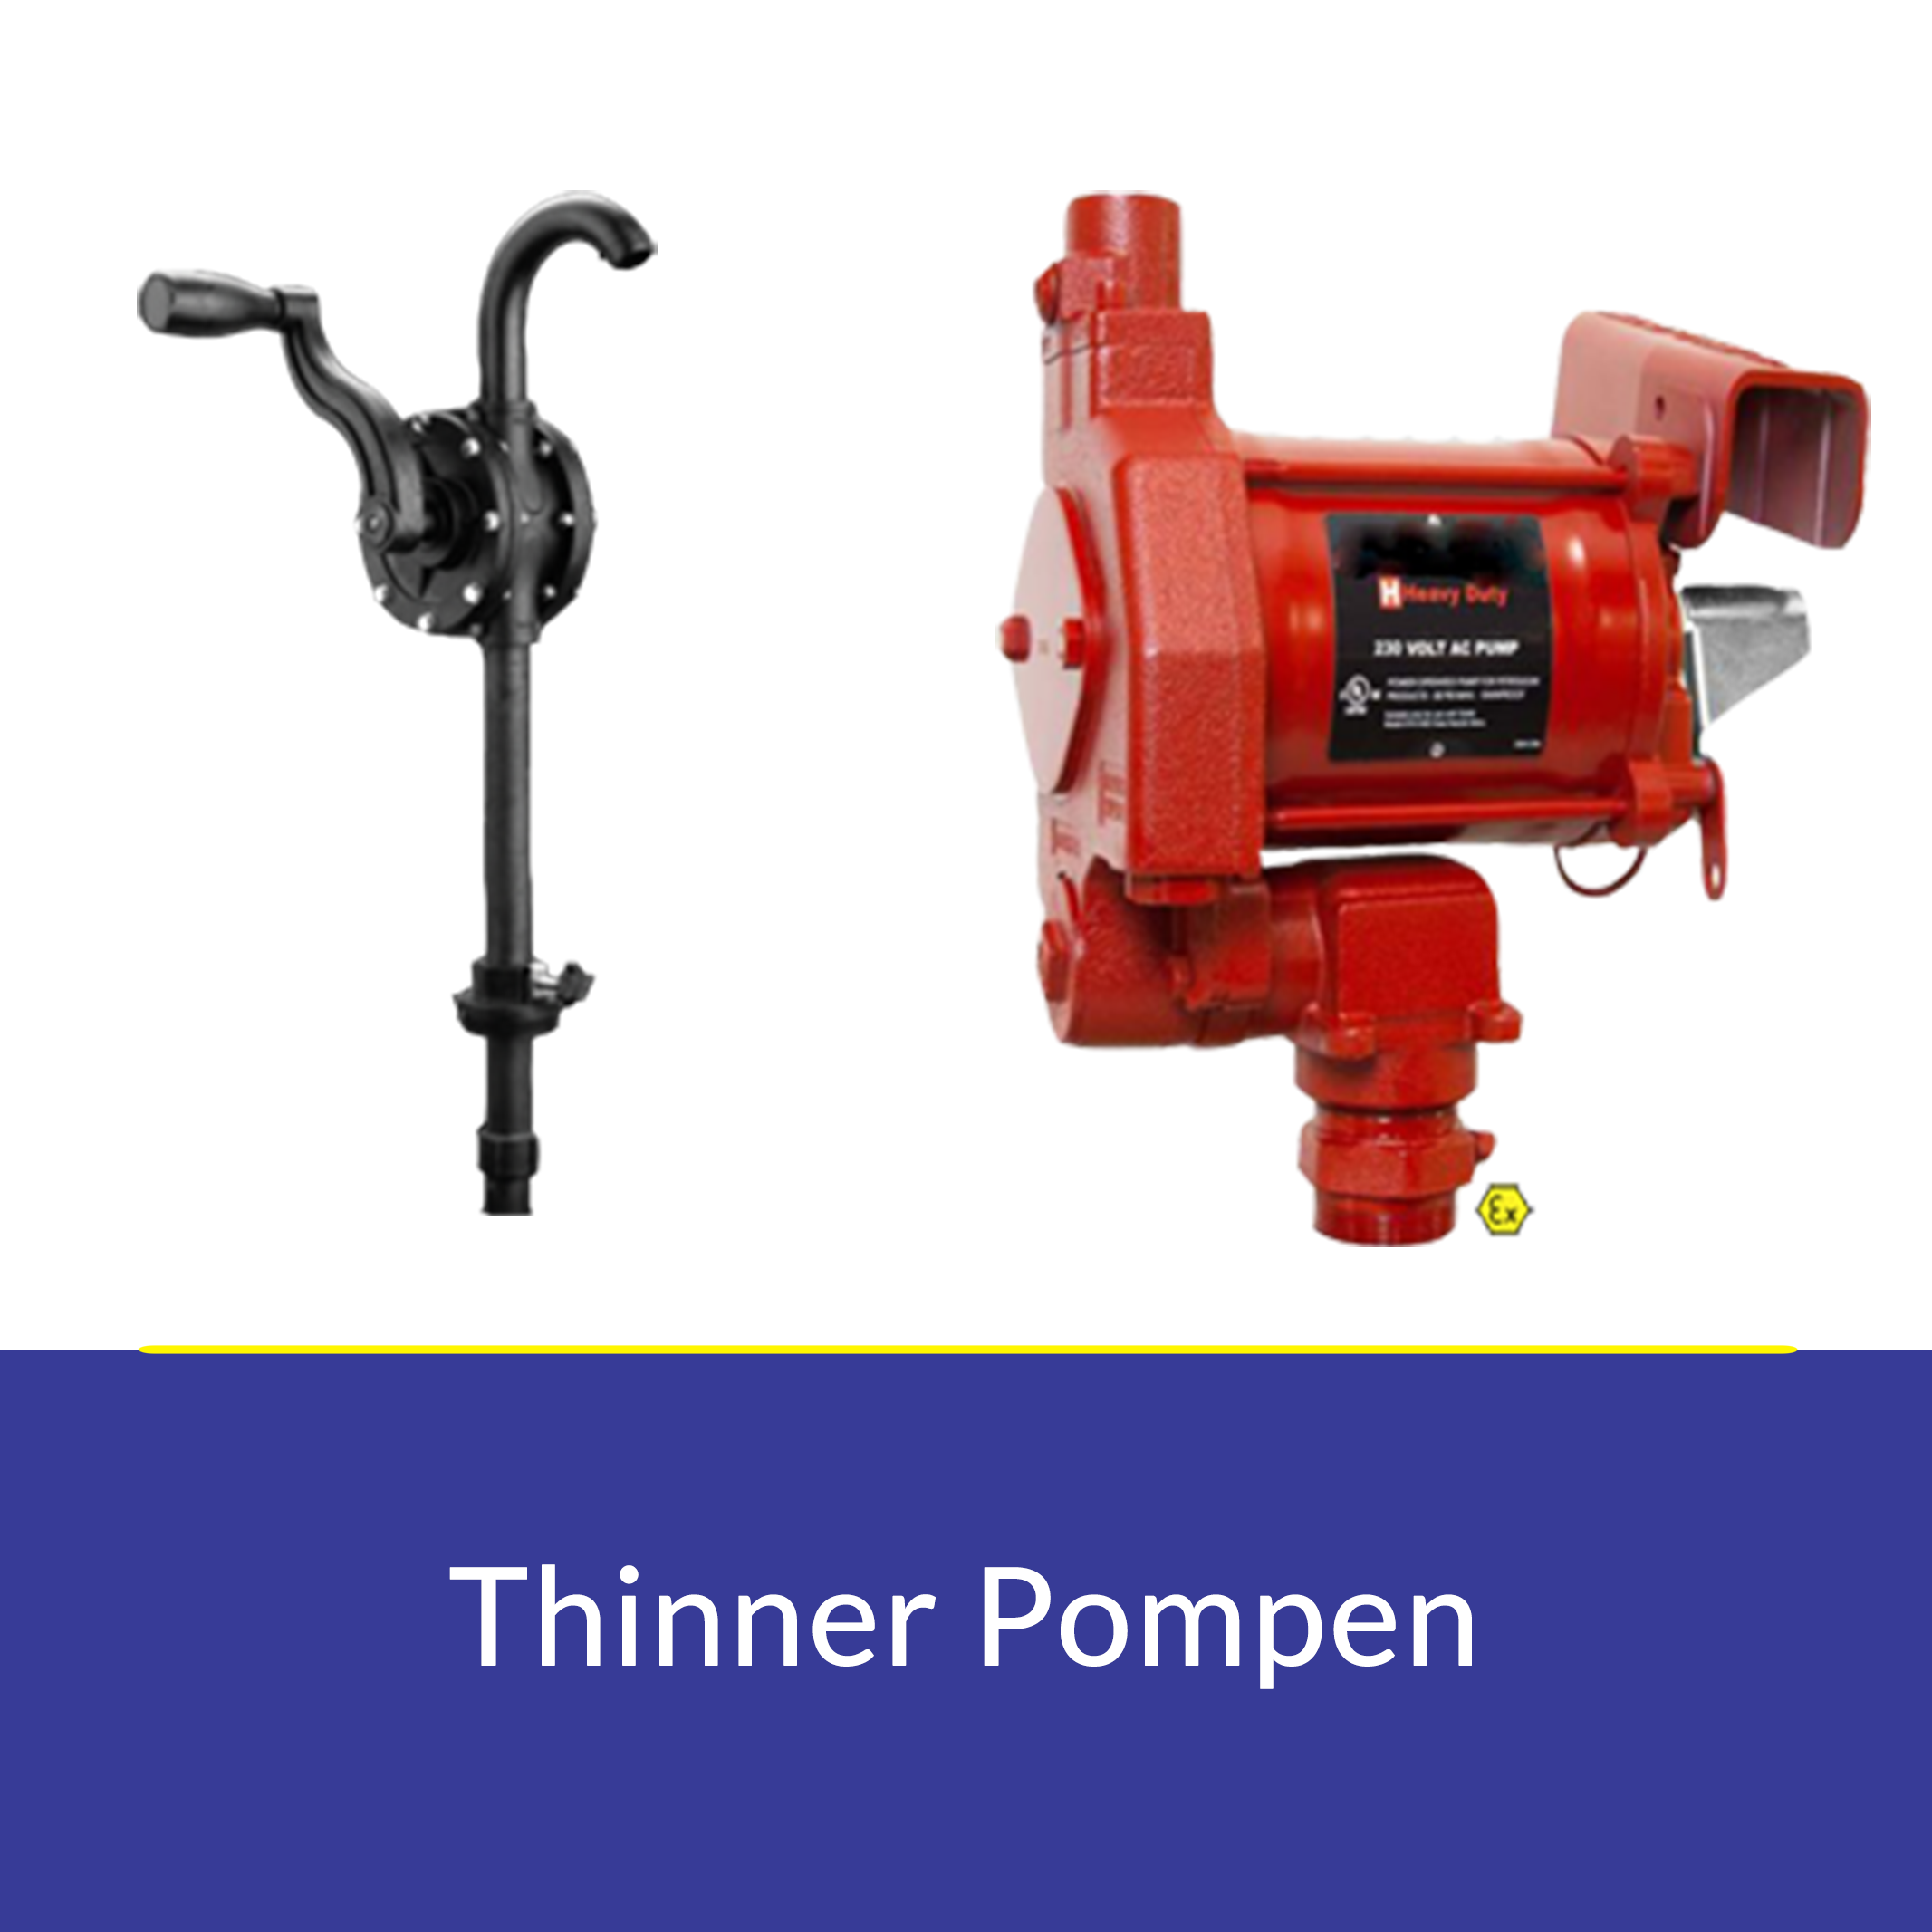 thinnerPompen